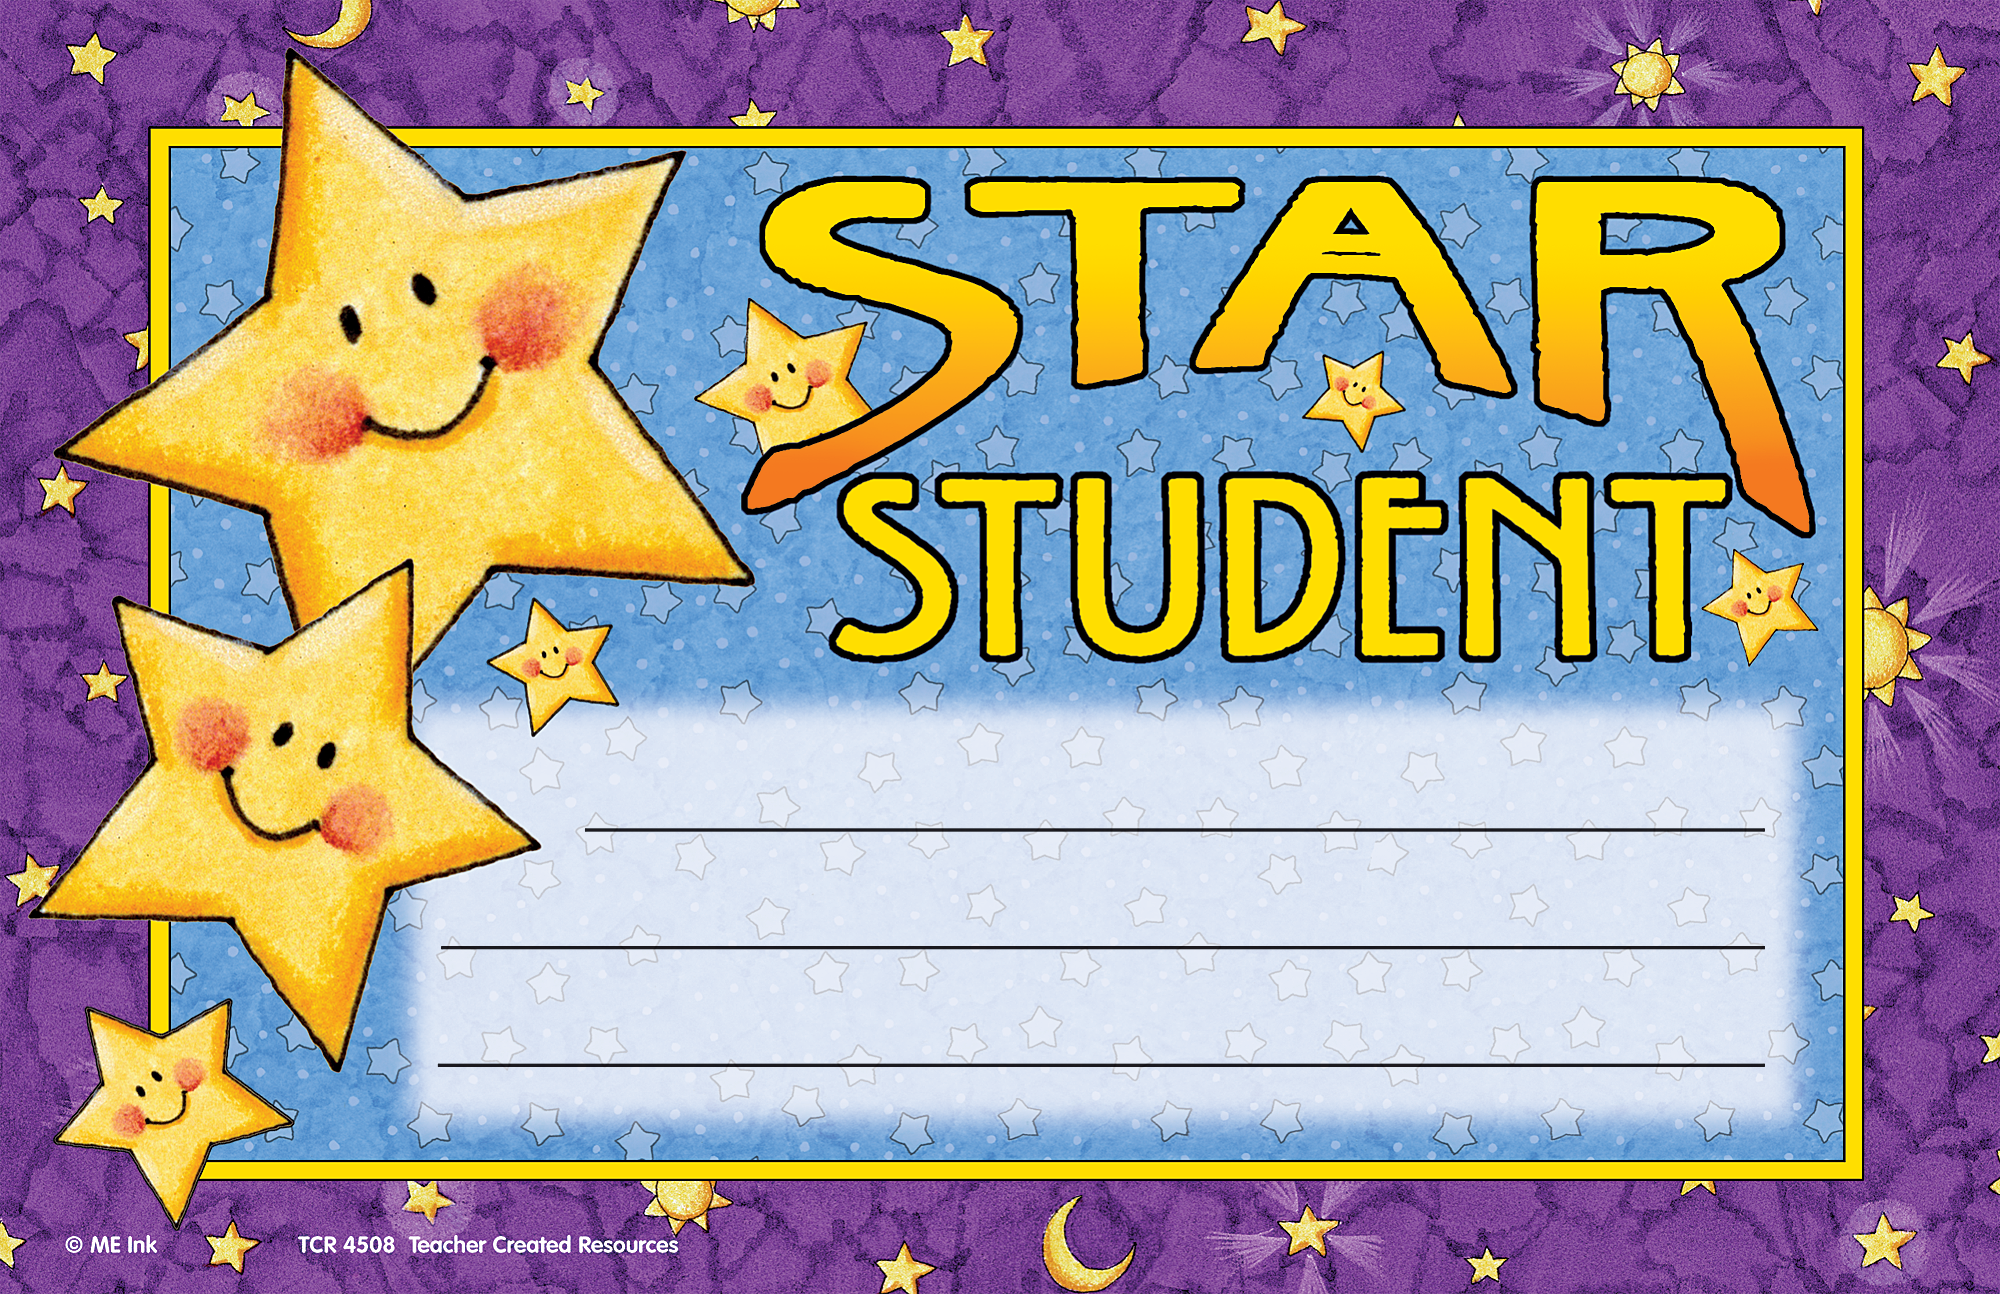 star student awards from mary engelbreit tcr4508 teacher created